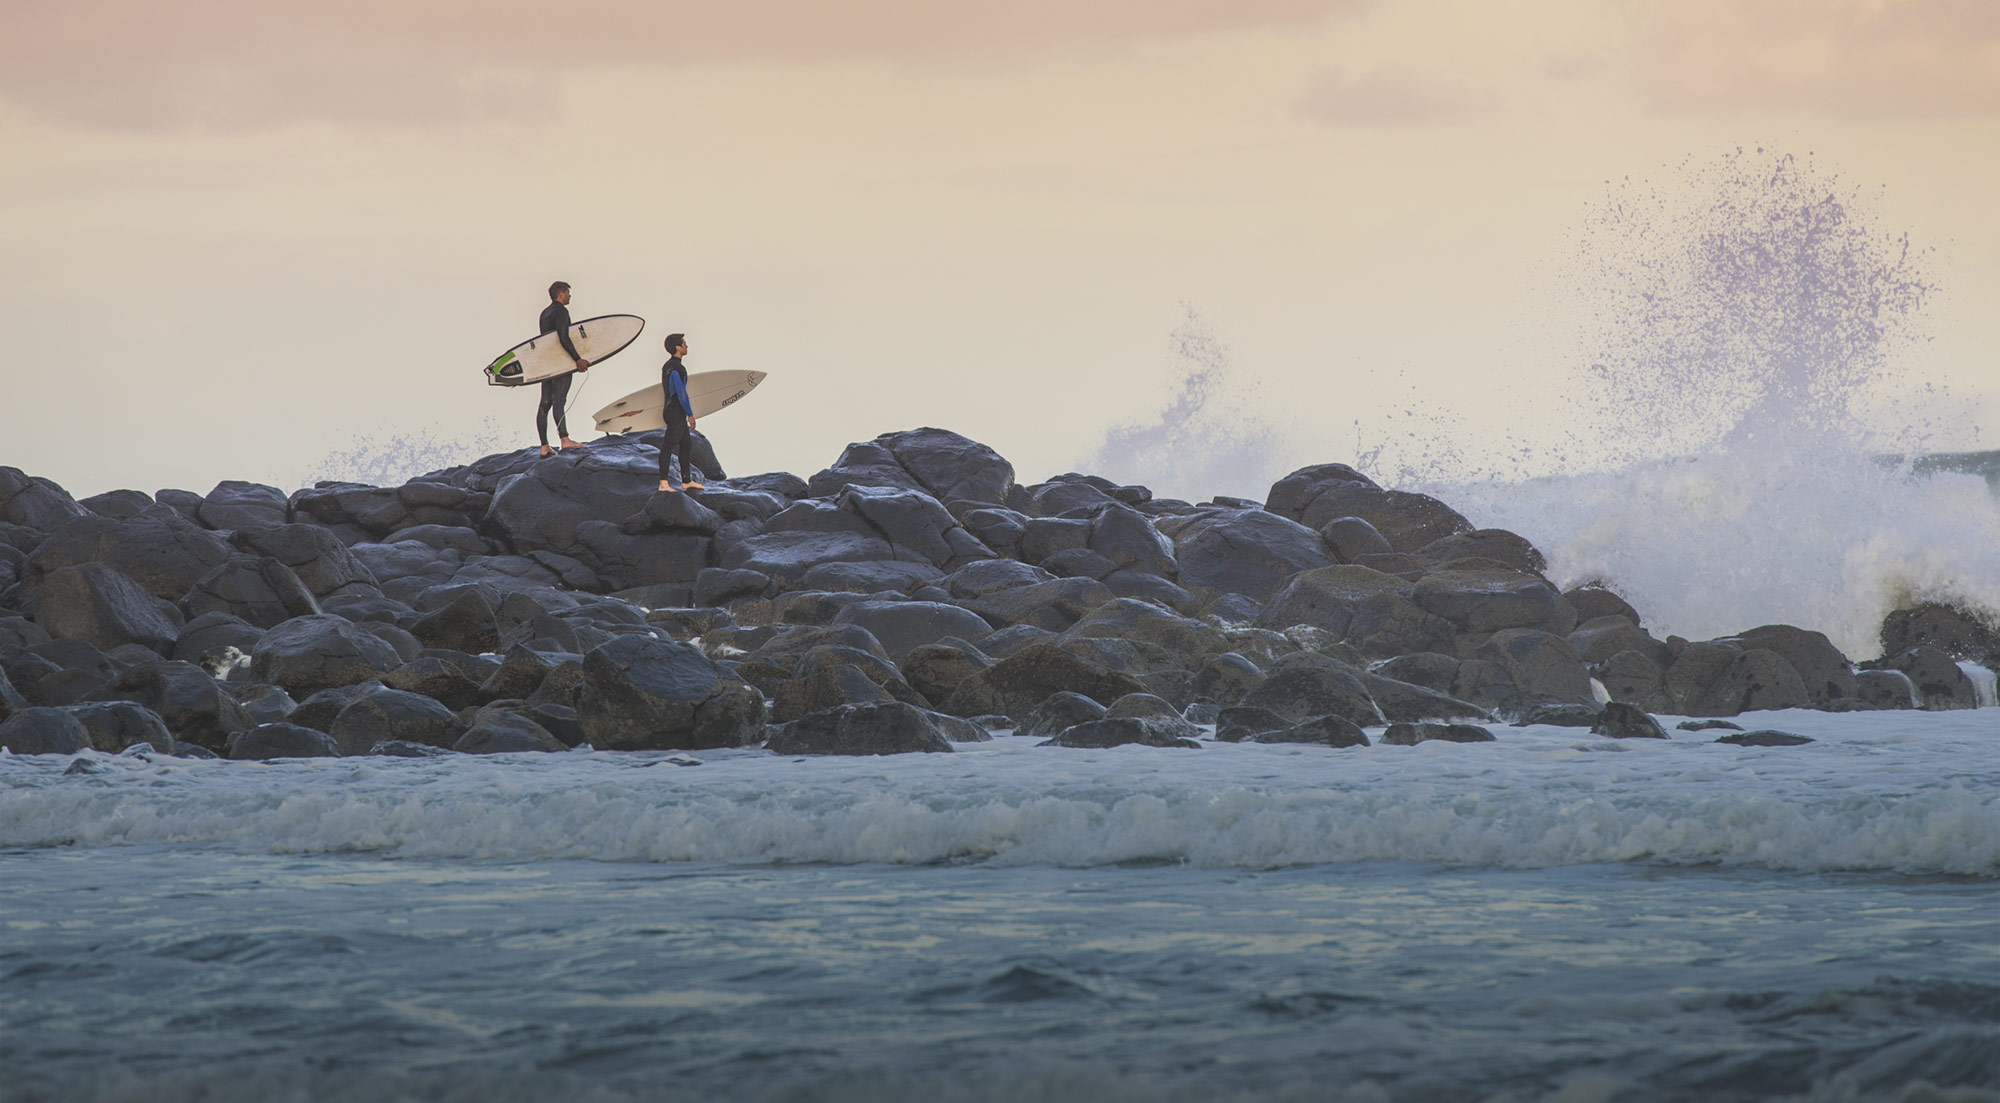 new zealand surfers motivating themselves into the waves